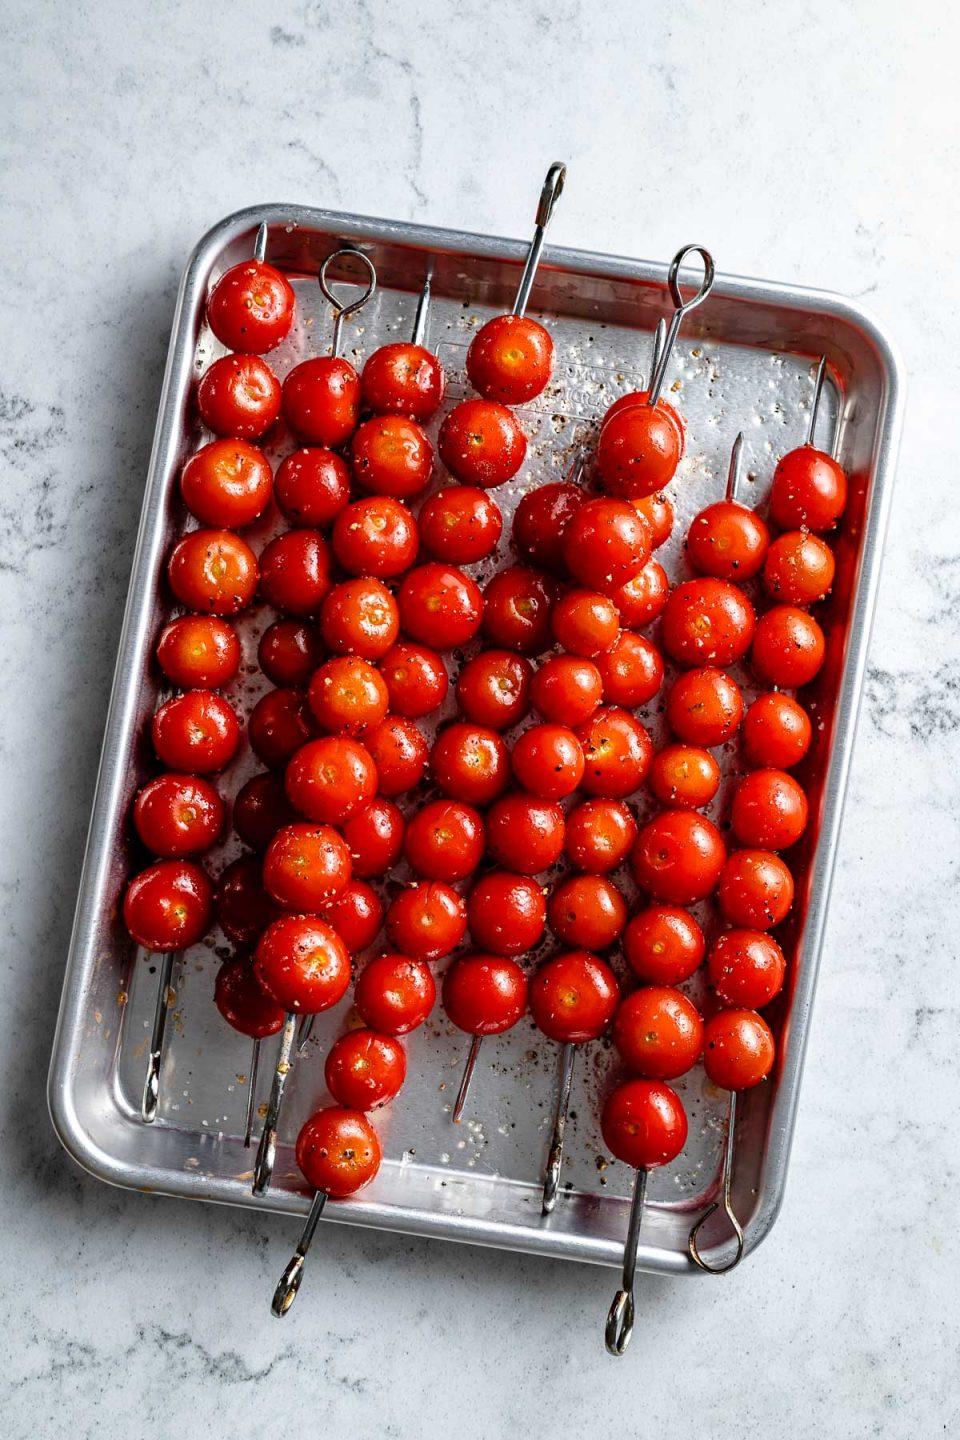 Multiple skewers of fresh & uncooked cherry tomatoes seasoned with oil, kosher salt, and ground black pepper are arranged on an aluminum baking sheet. The baking sheet sits on top of a white & gray marble surface.